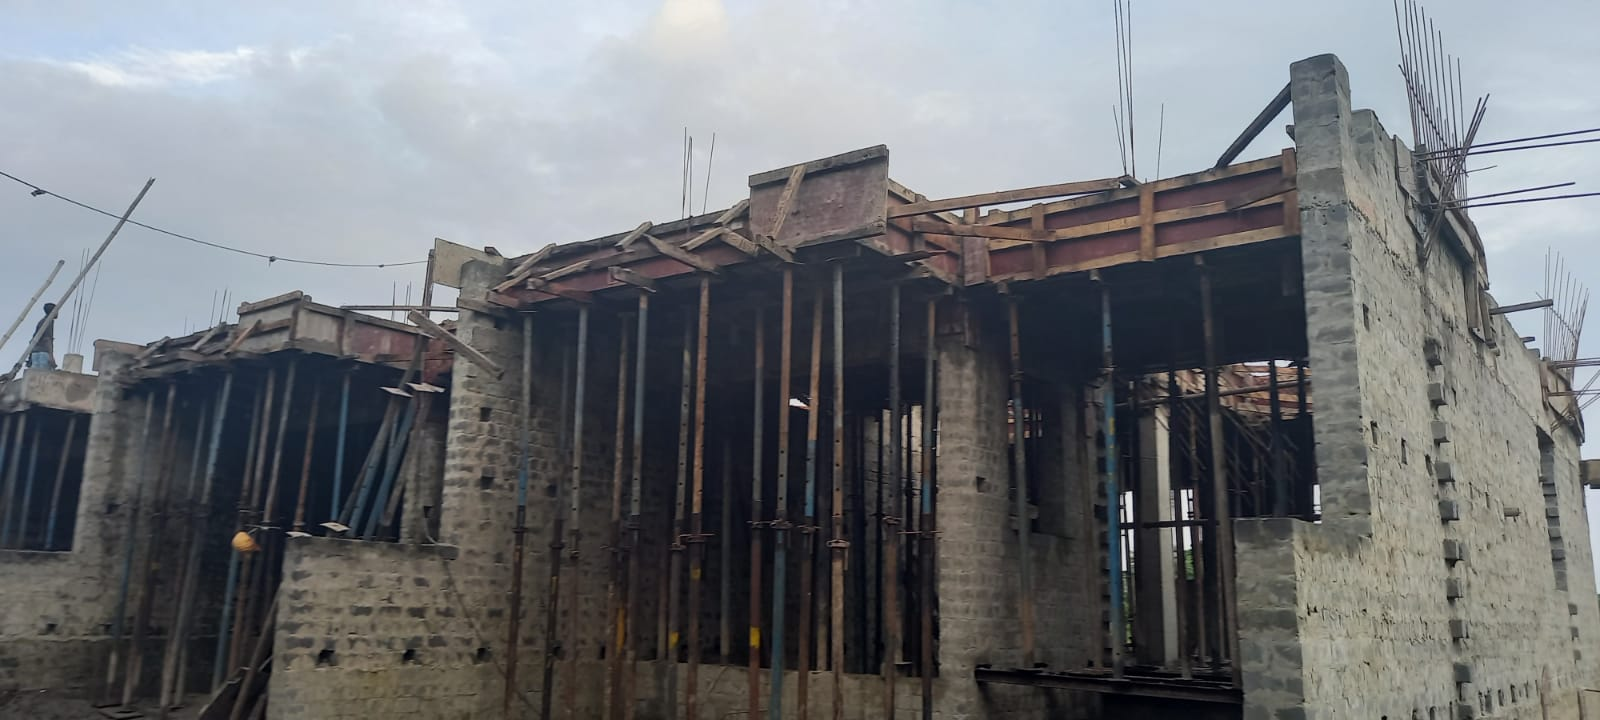 1st floor slab casting of row house no. 224 and 225 have been completed as on 19.08.2021